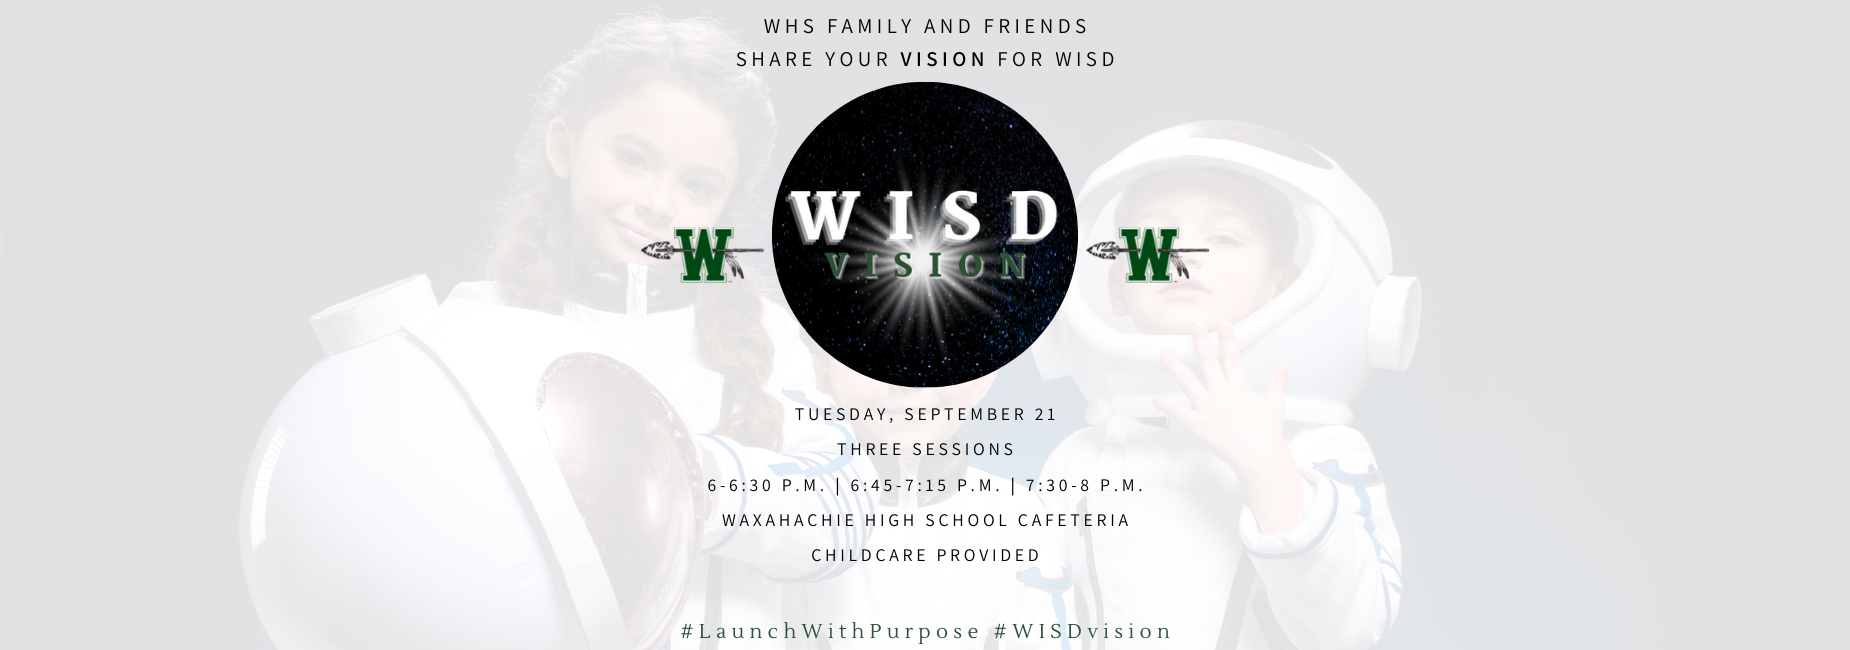 graphic is an invitation to join a WISD visioning session on September 21 at 6, 6:45 or 7:30 in the WHS cafeteria